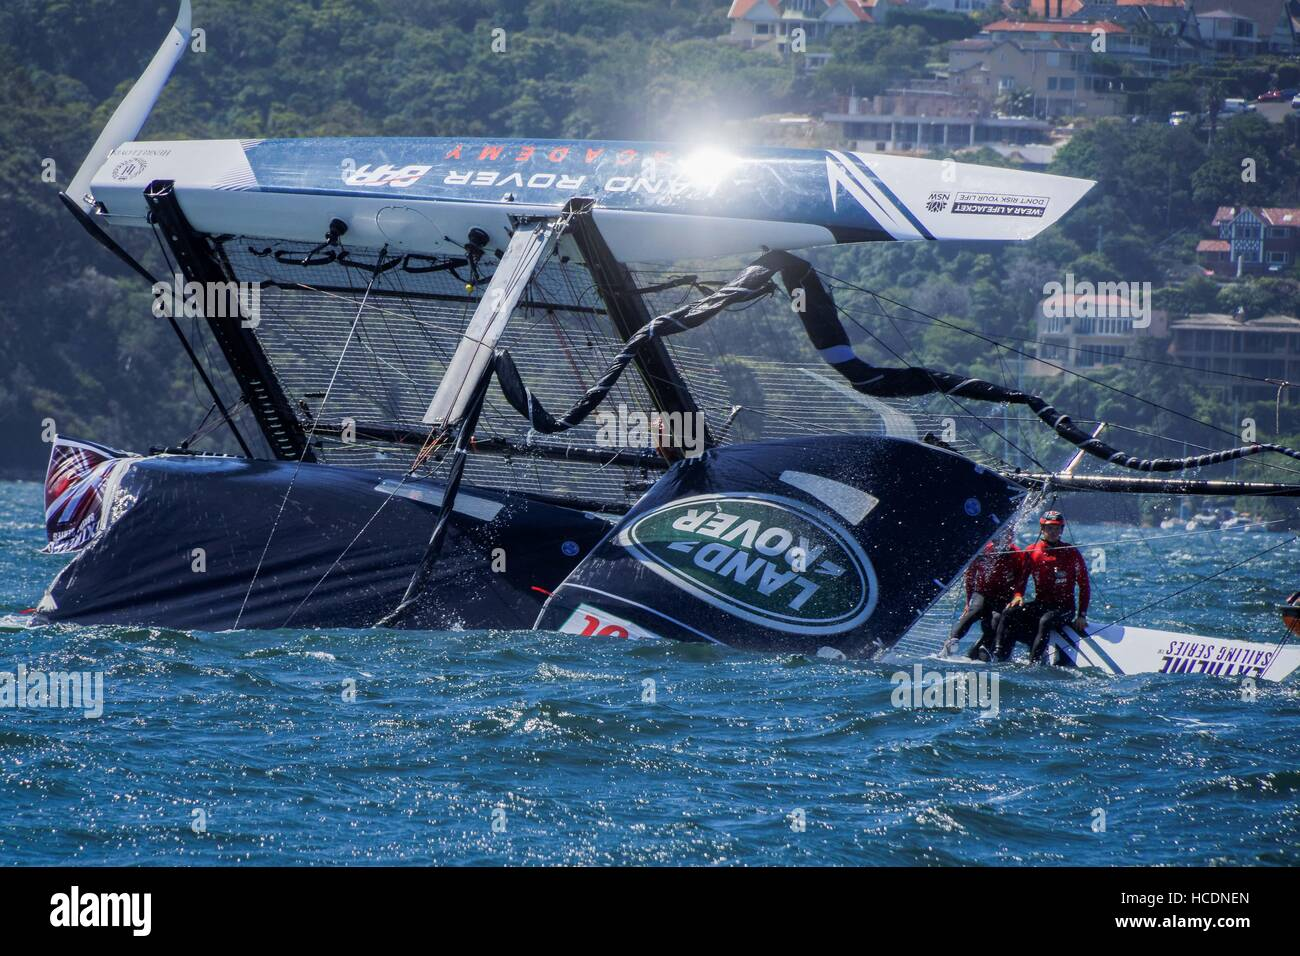 Sydney, Australia. 08th Dec, 2016. Land Rover BAR Academy (GBR), skippered by Neil Hunter (GBR) is righted slowly - Stock Image